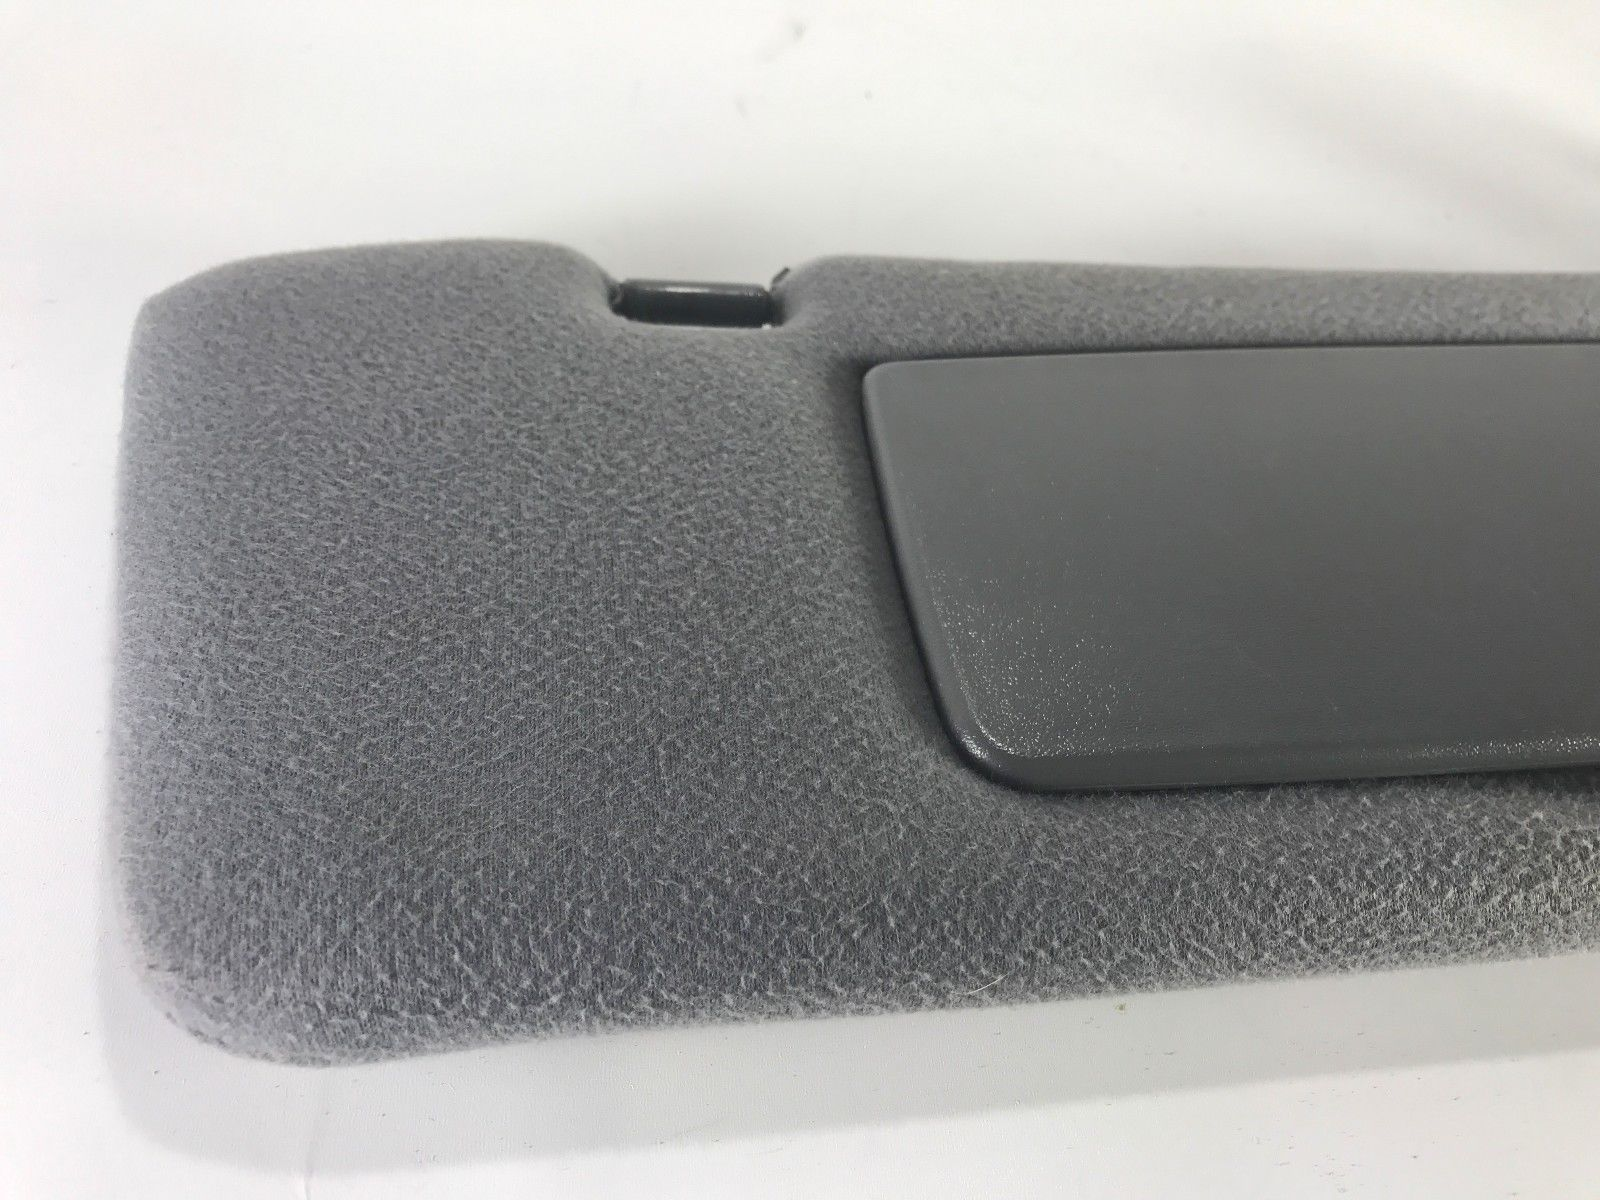 ... 1997-2001 Toyota Camry Sun Visor SUNVISOR Passenger (RH) Side GREY  LIGHTED ... e451dfc850d